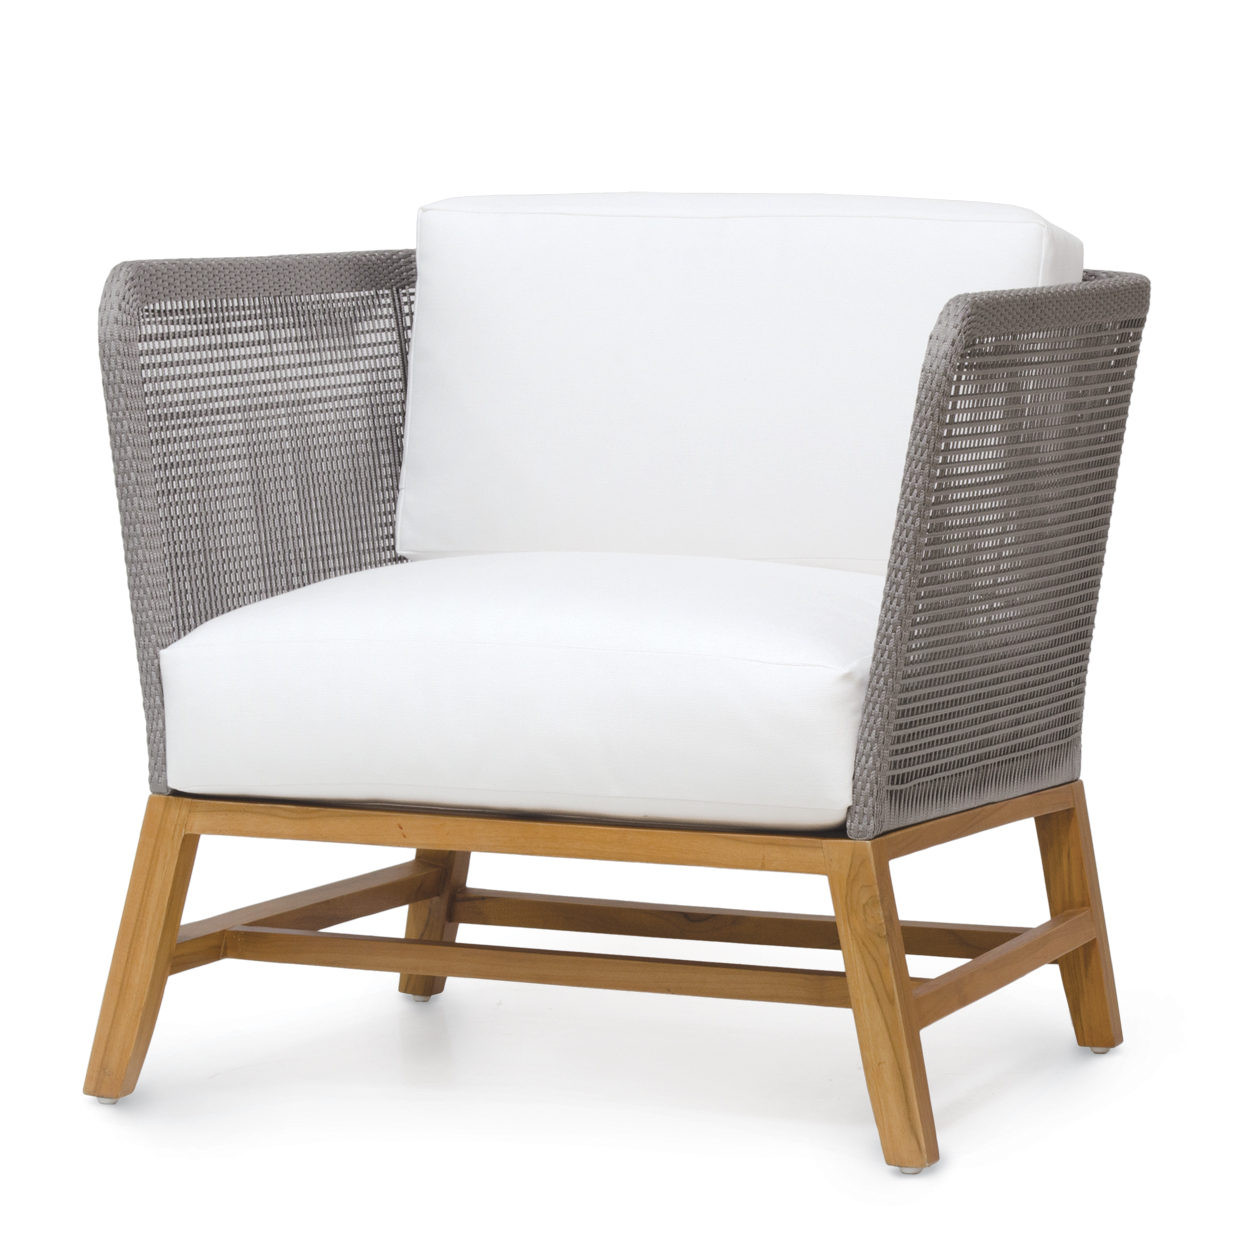 Best ideas about Outdoor Lounge Chairs . Save or Pin PALECEK Now.